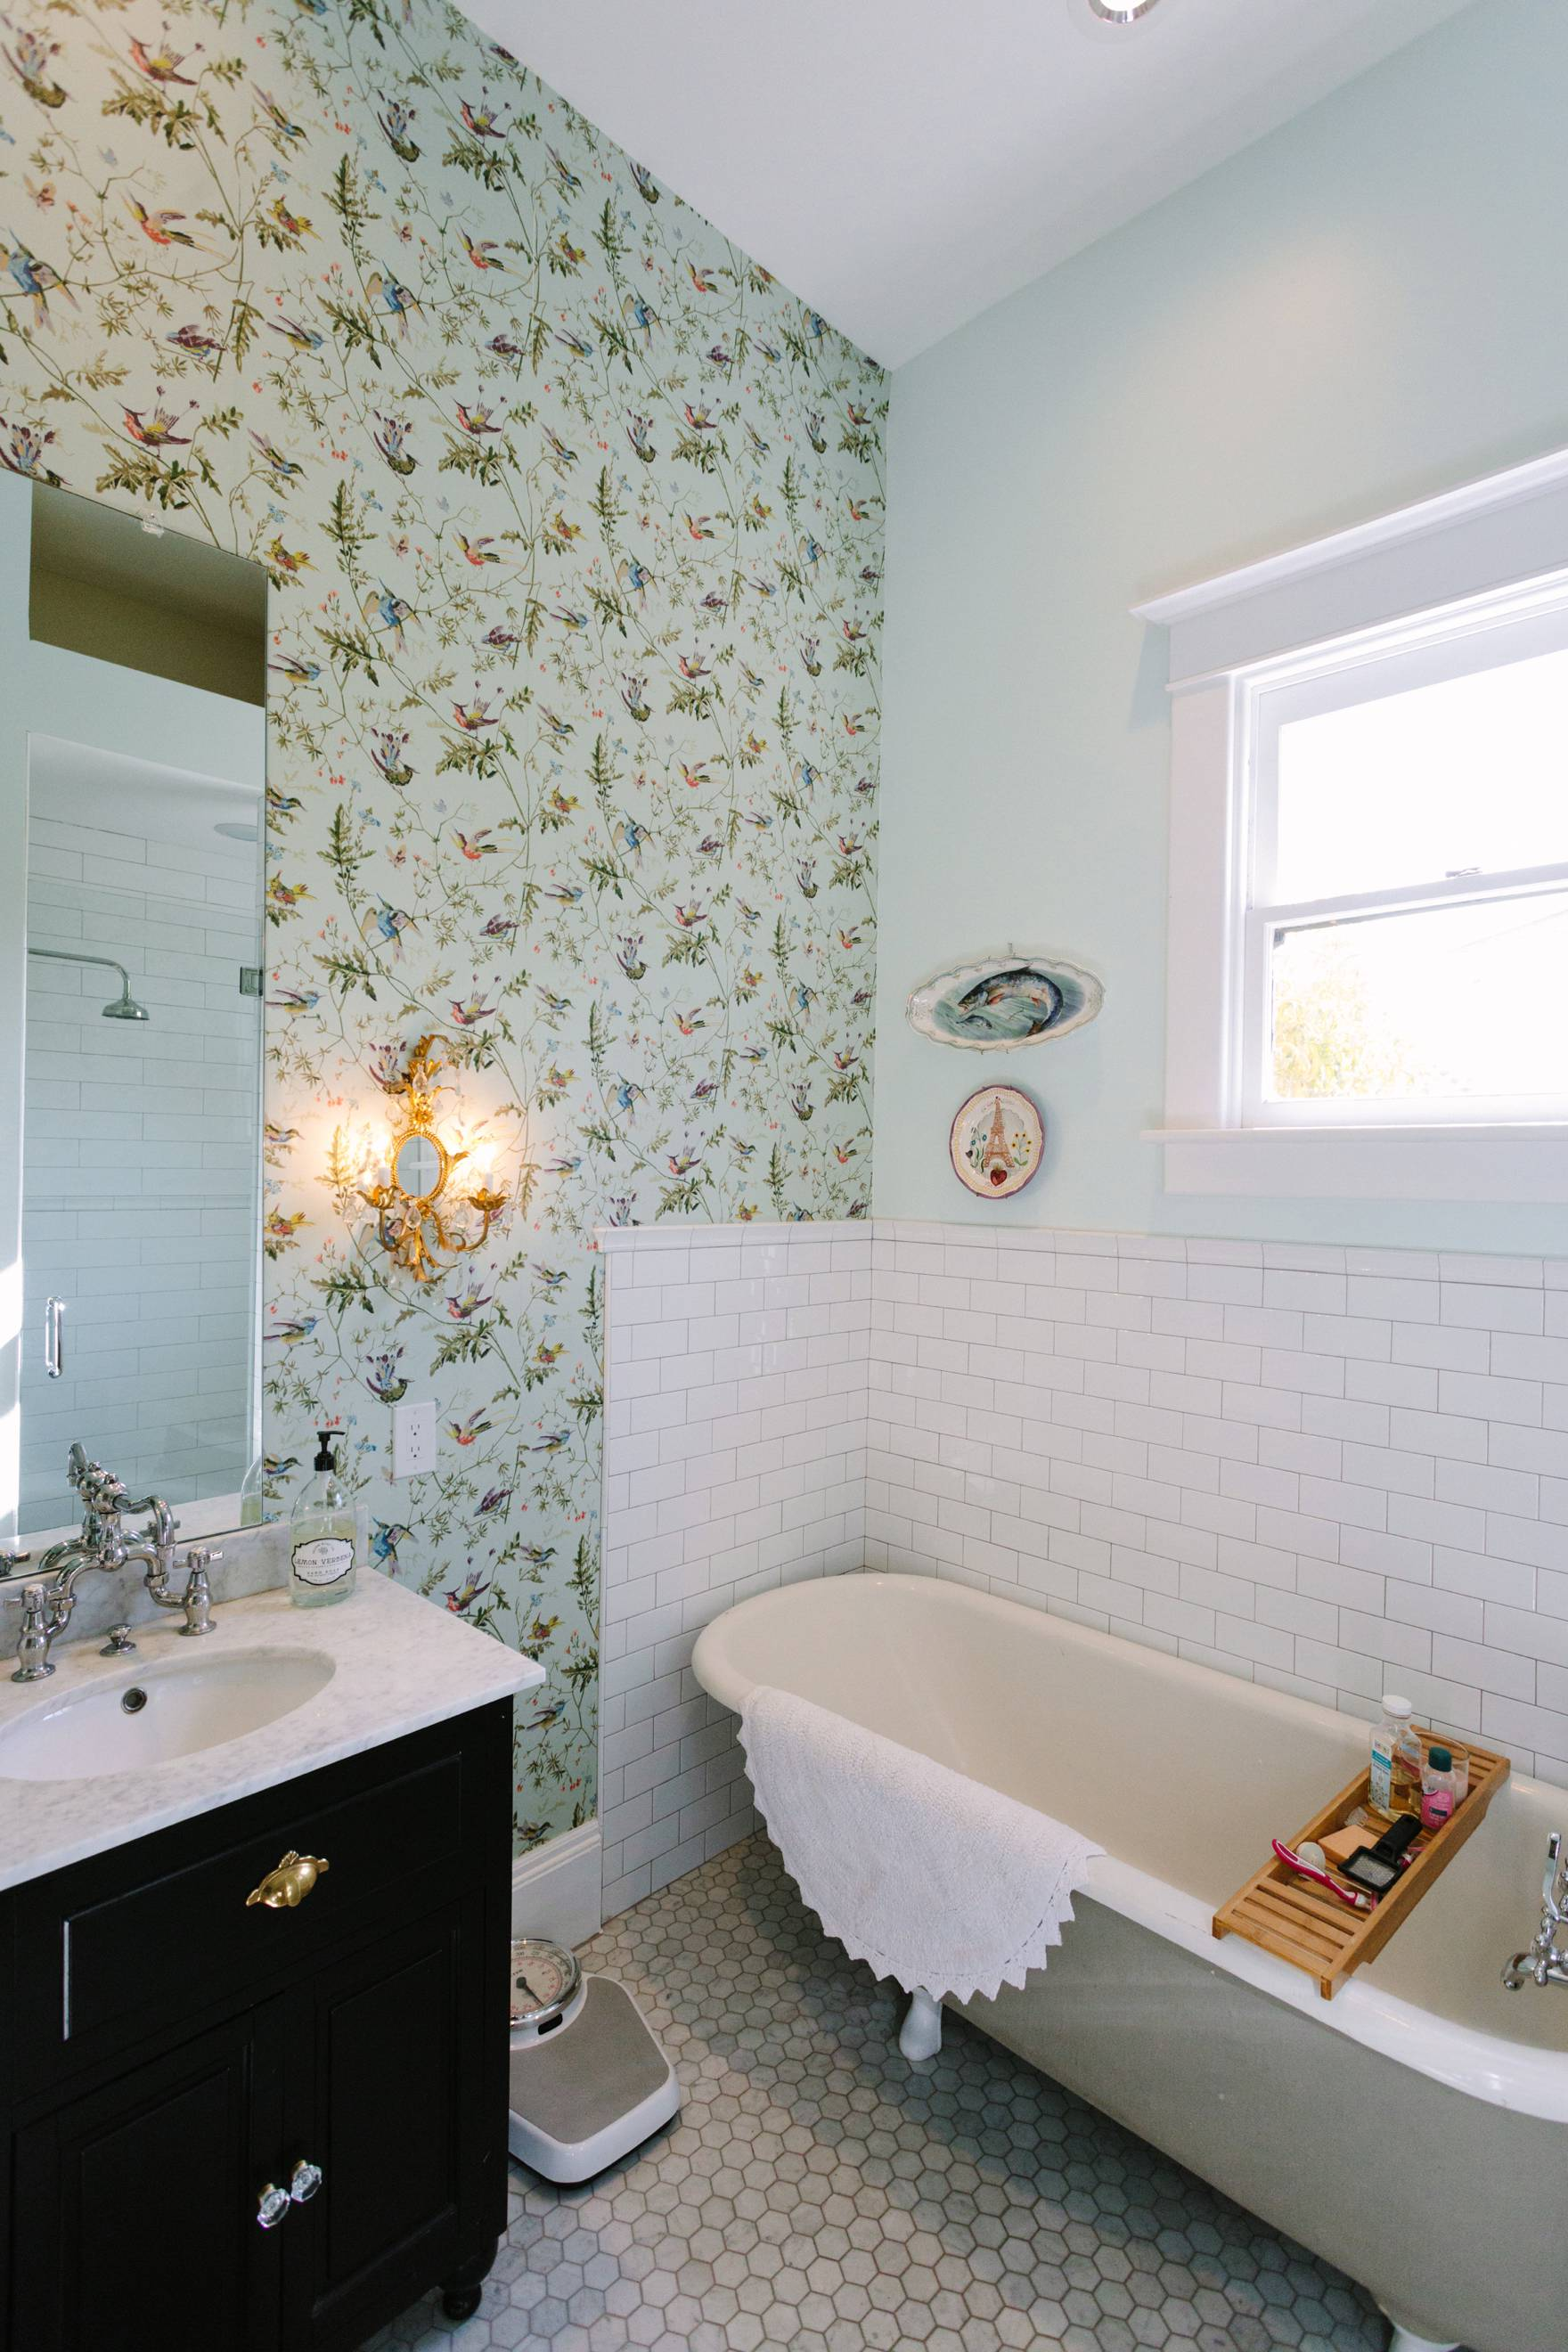 Home Tour of Boho Farm and Home in Downtown Phoenix - cottage brick style home from 1903 bathroom white subway tile and wallpaper French style